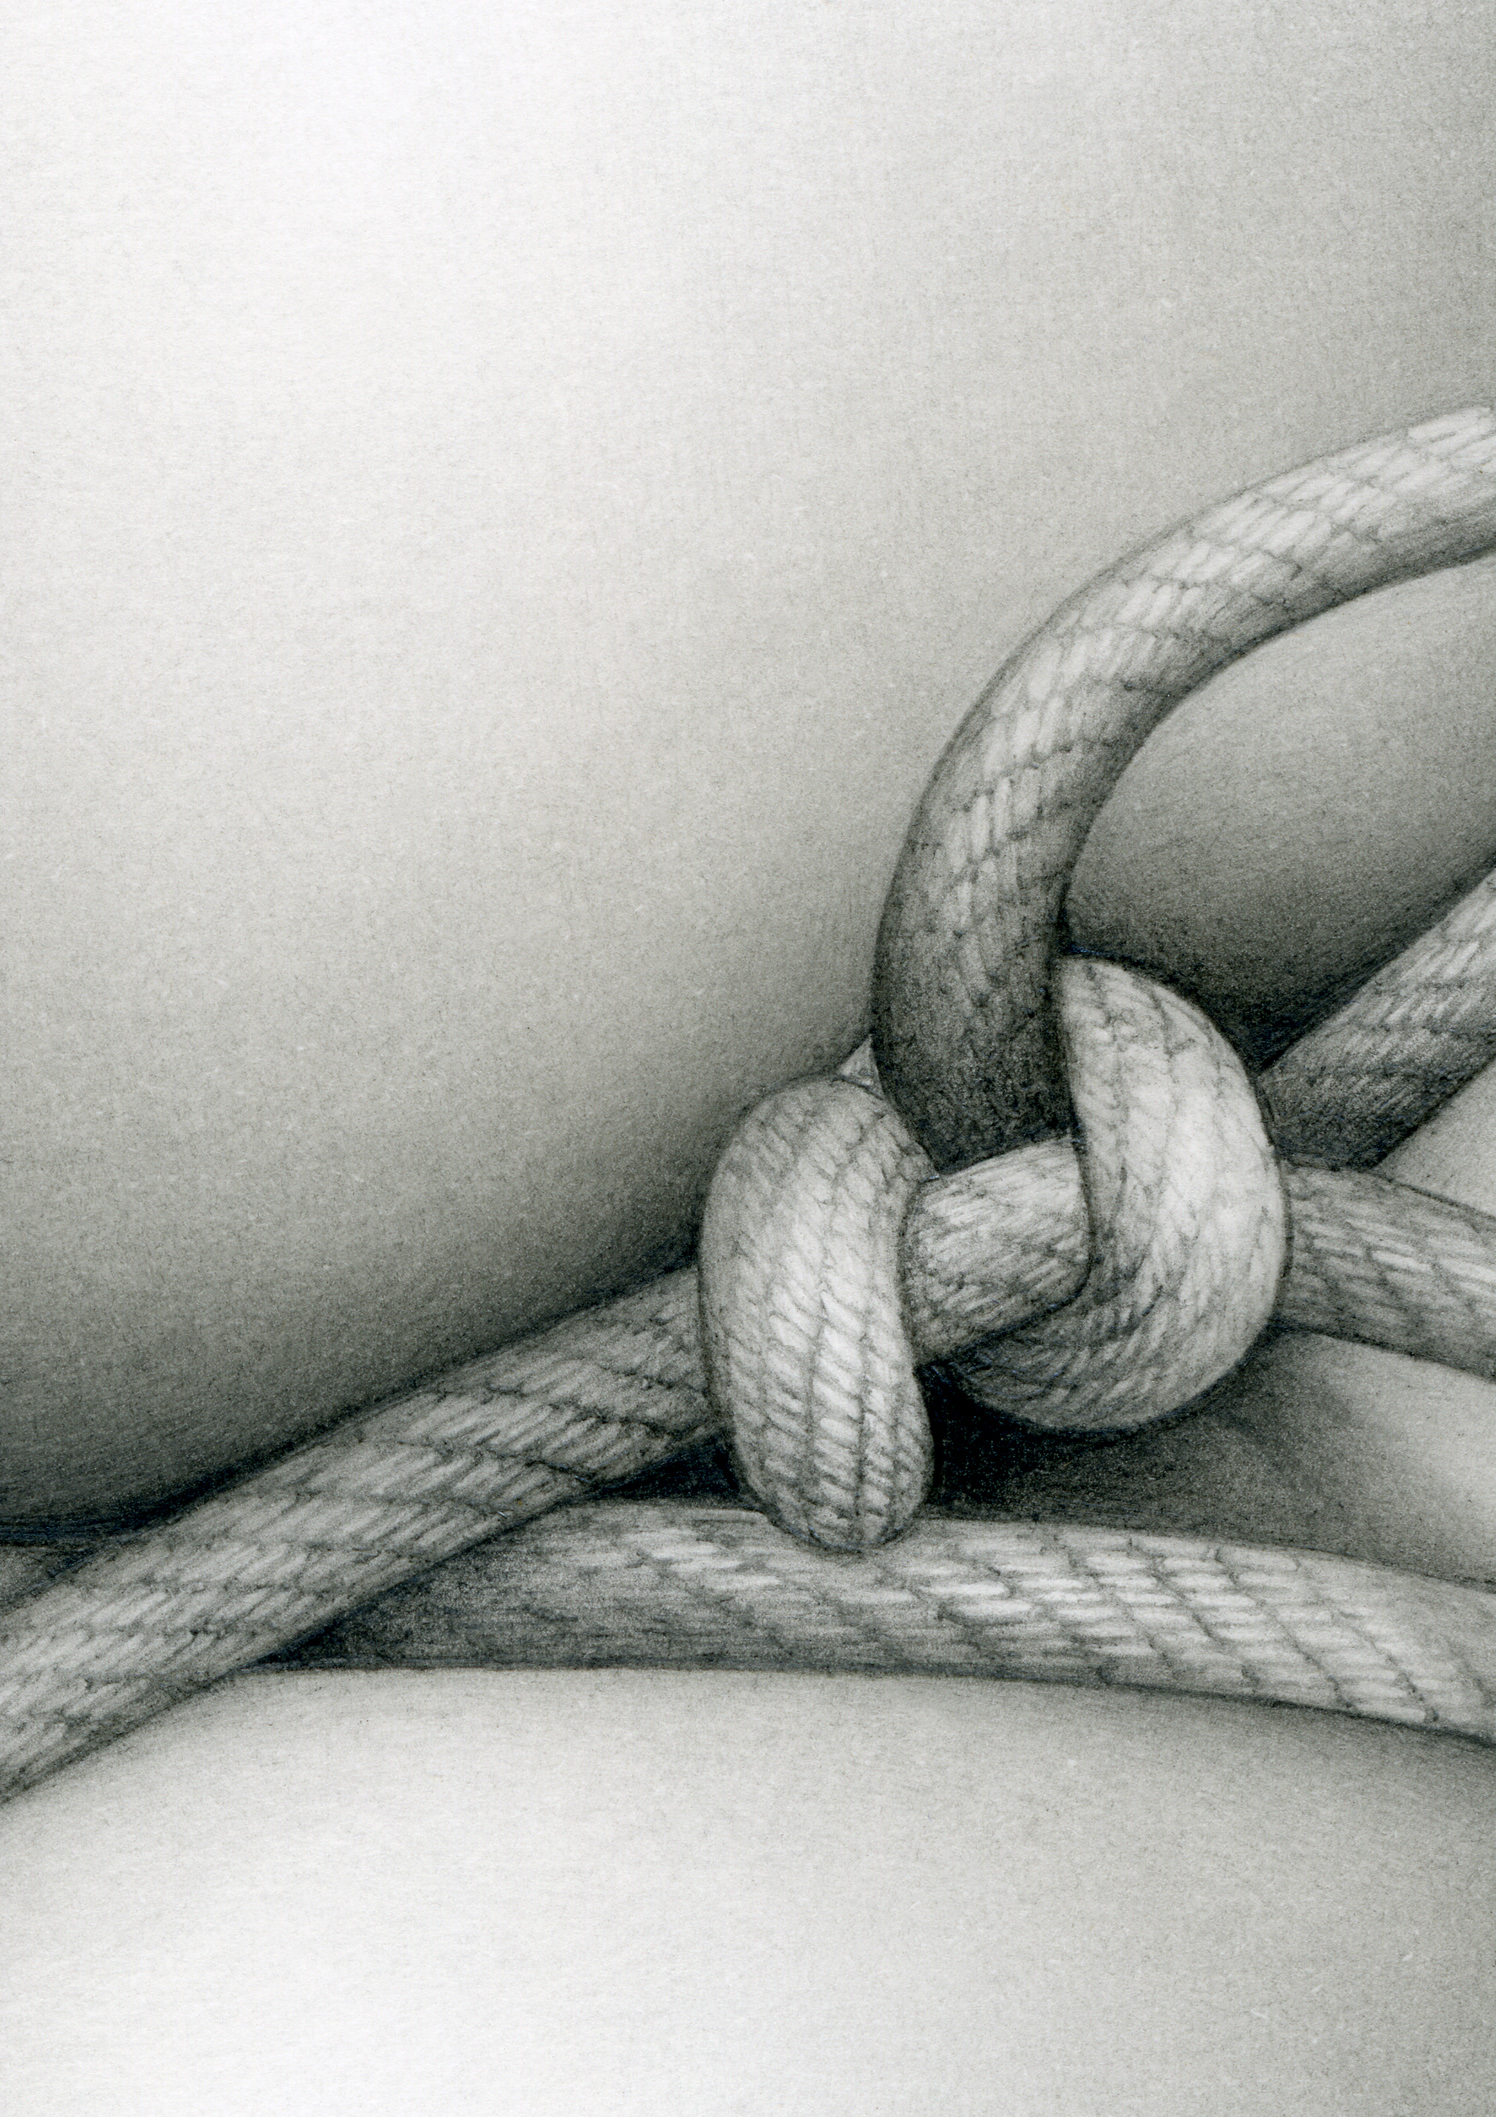 Female Flesh With Knotted Rope